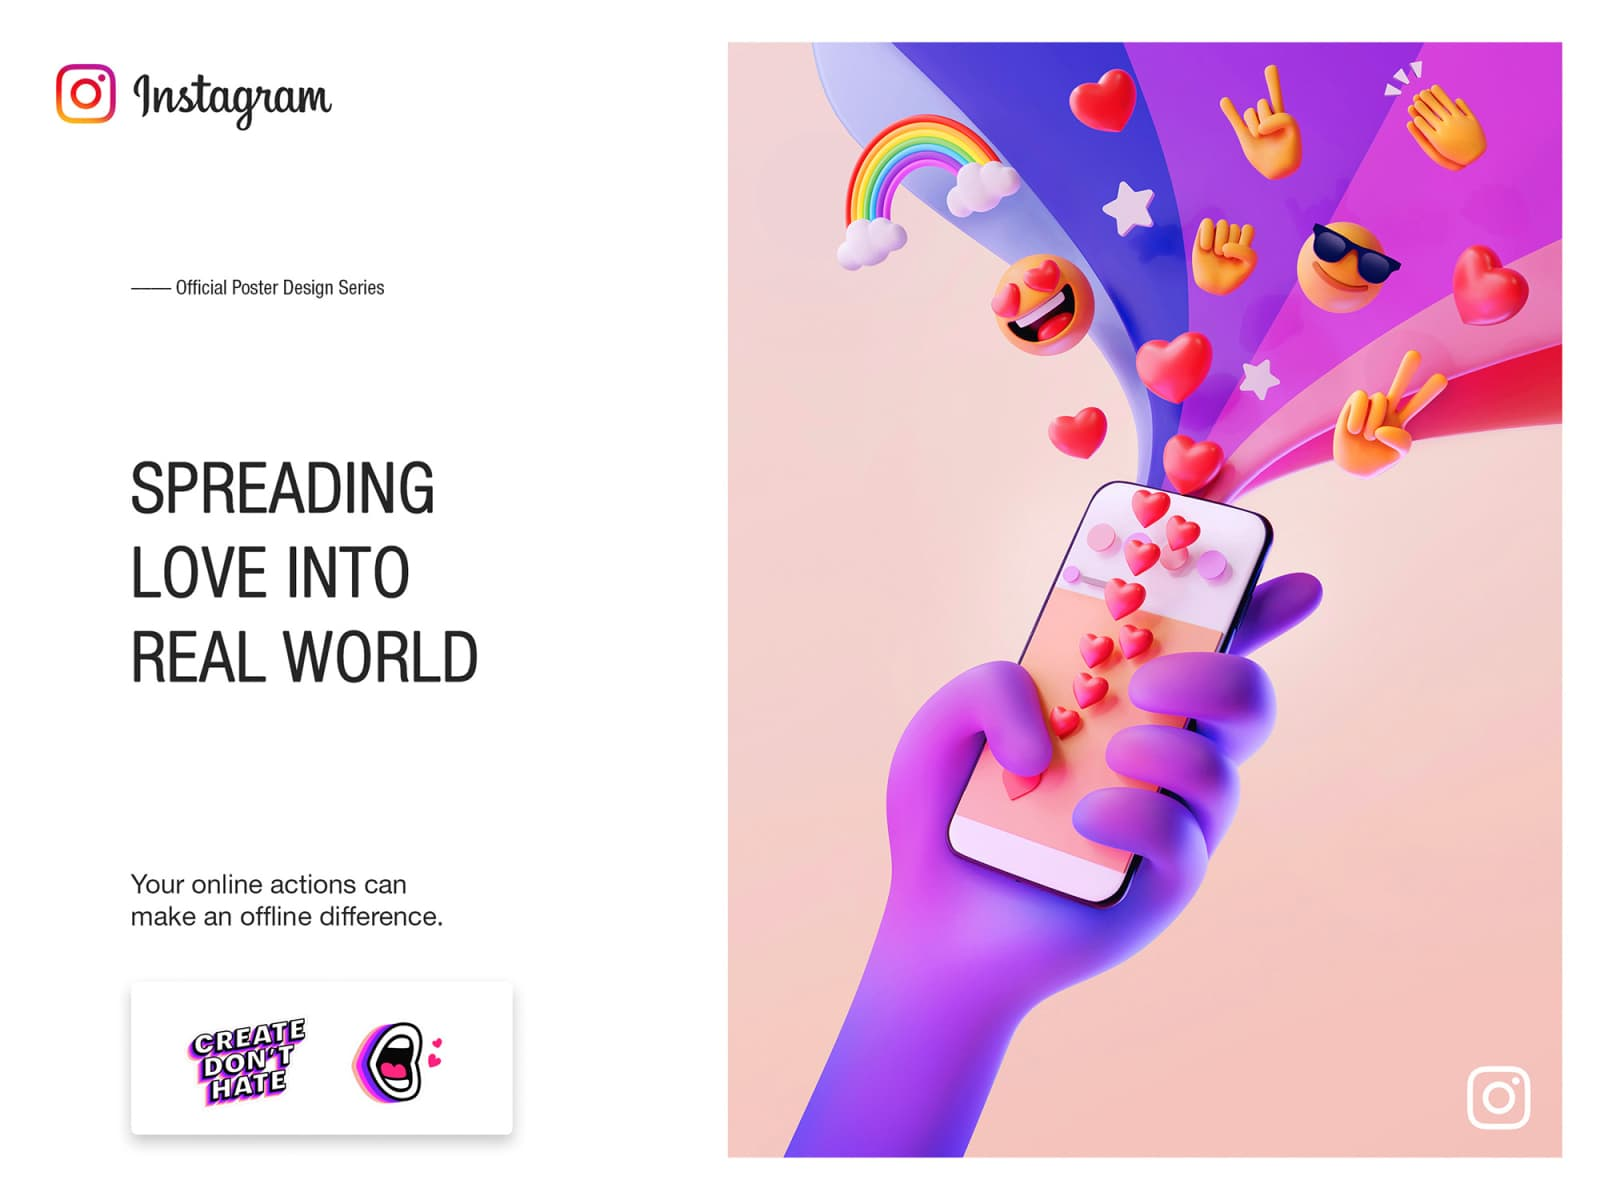 Instagram Anti-Bullying by Leo Natsume